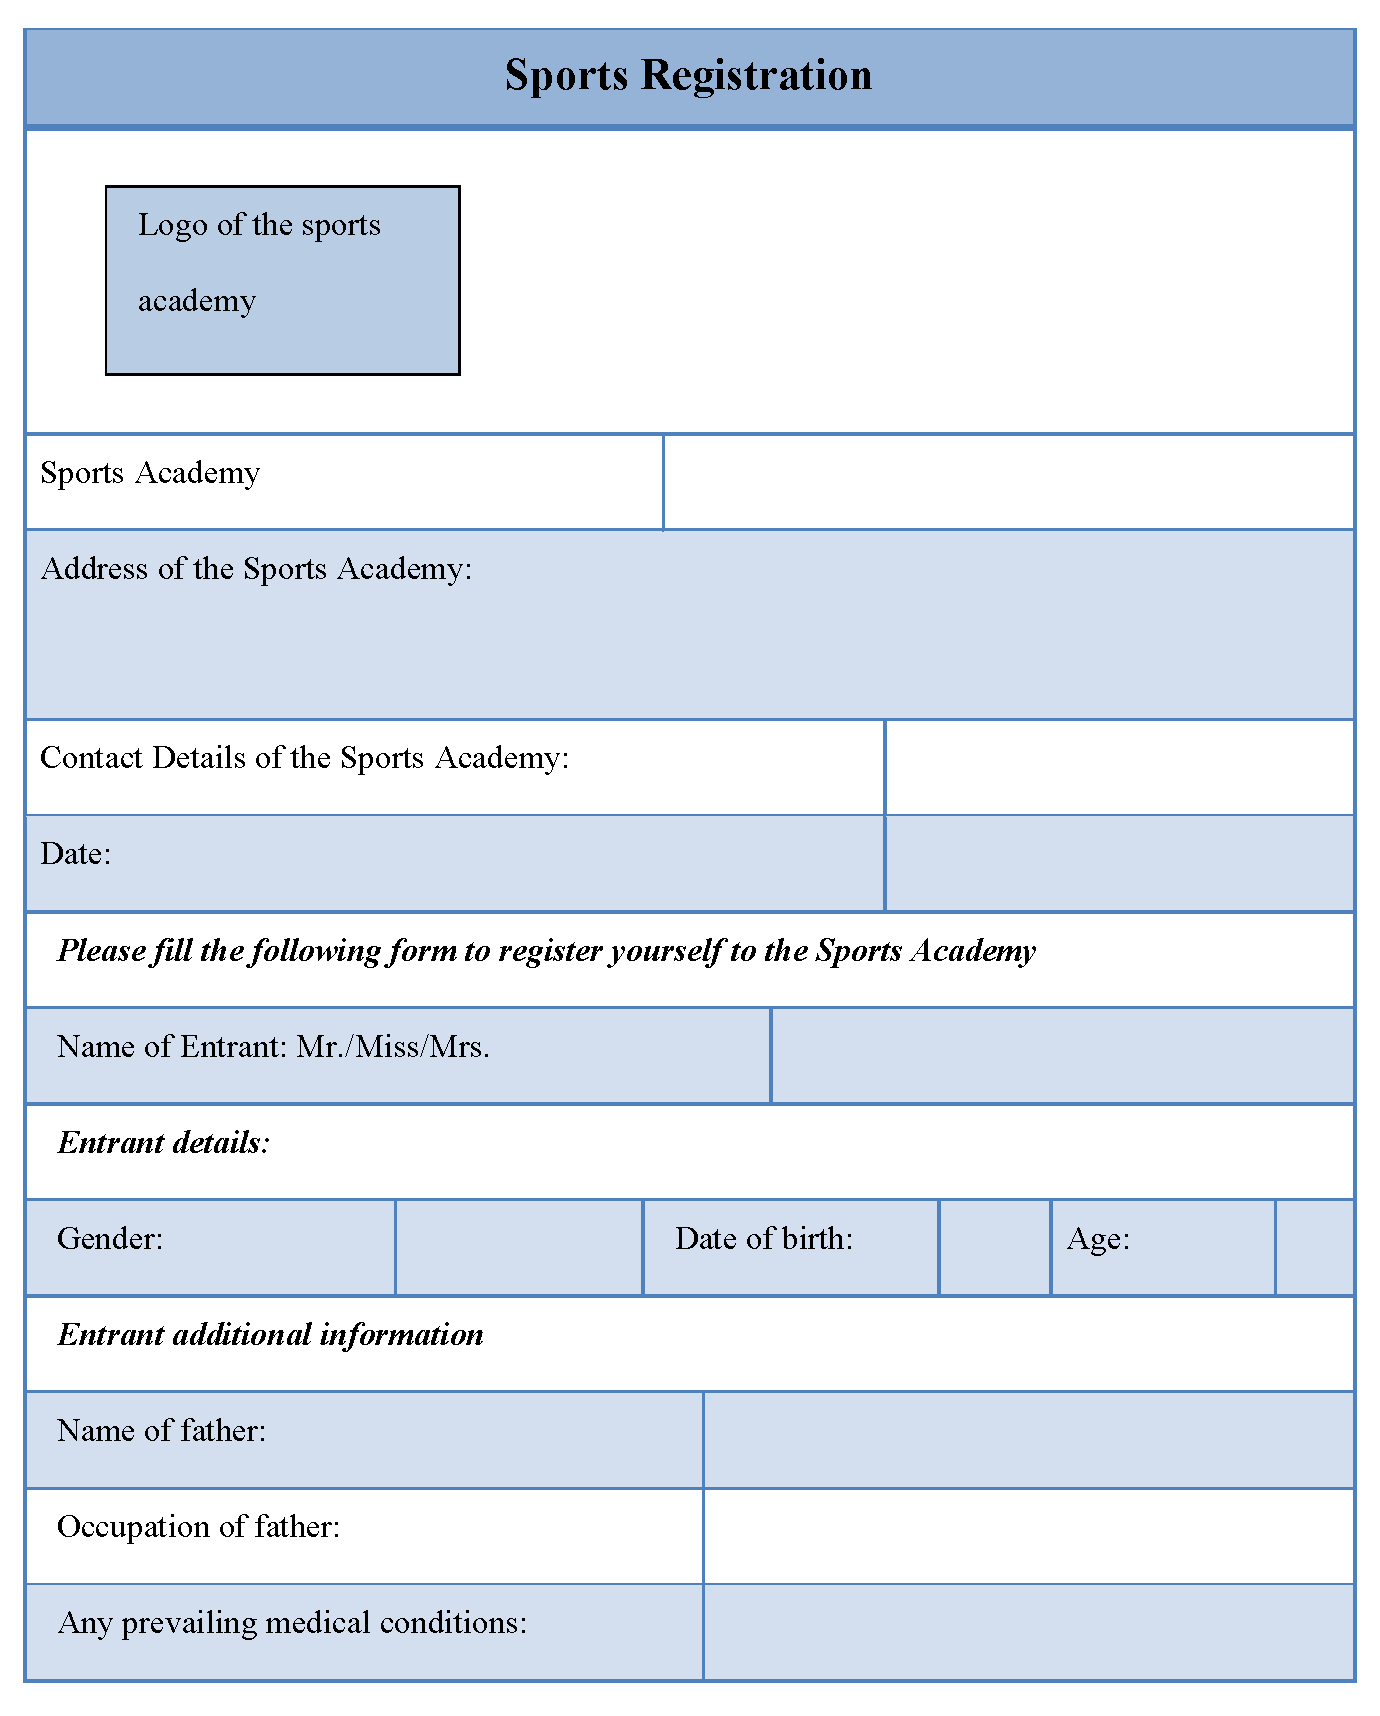 Sports registration form editable forms for Sport registration form template